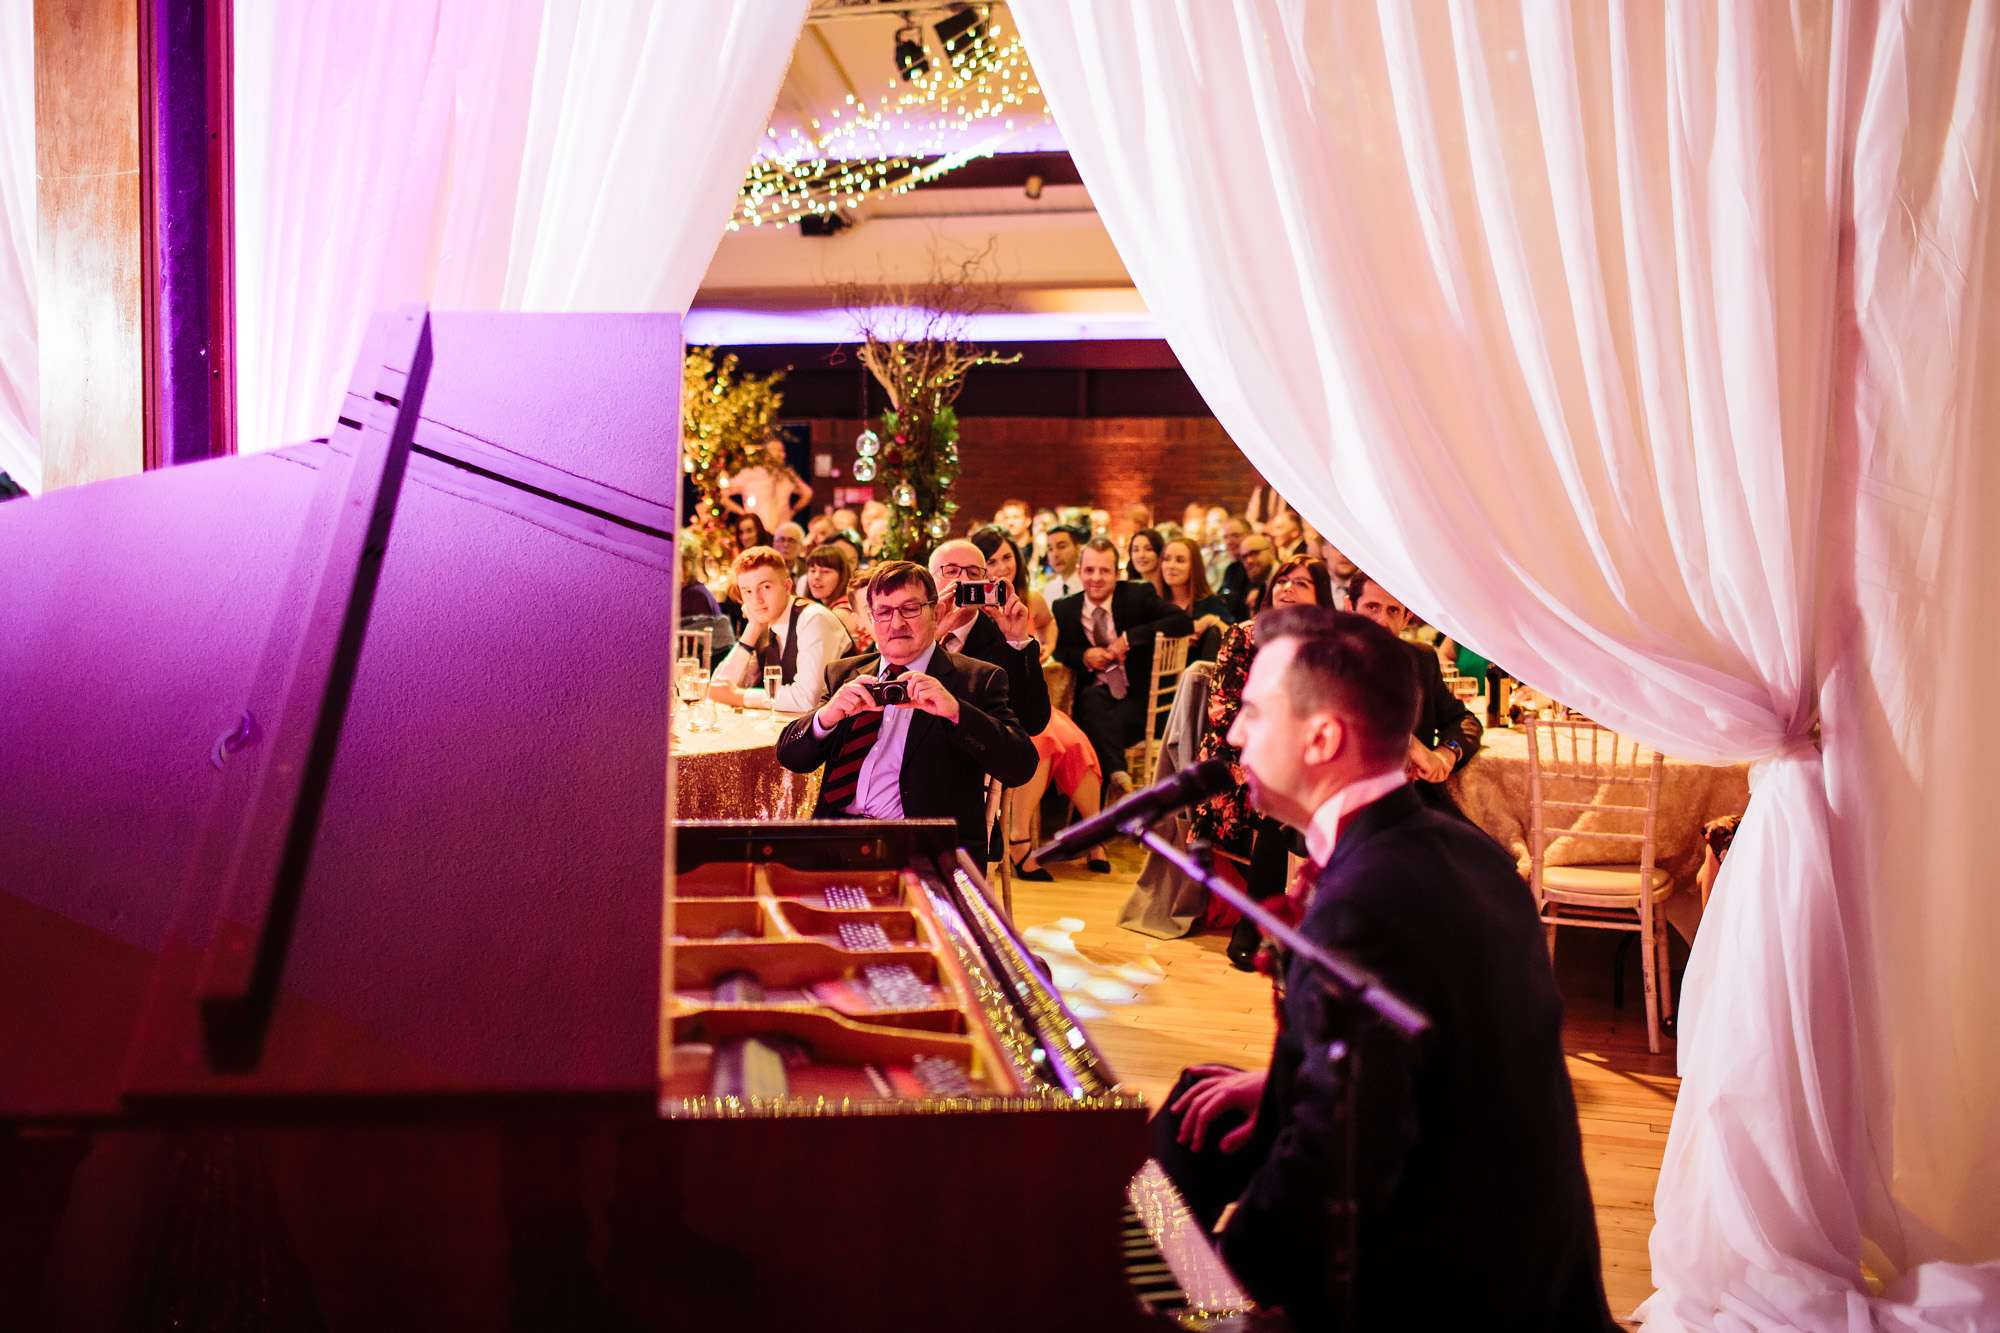 Piano player at a wedding in Blackpool